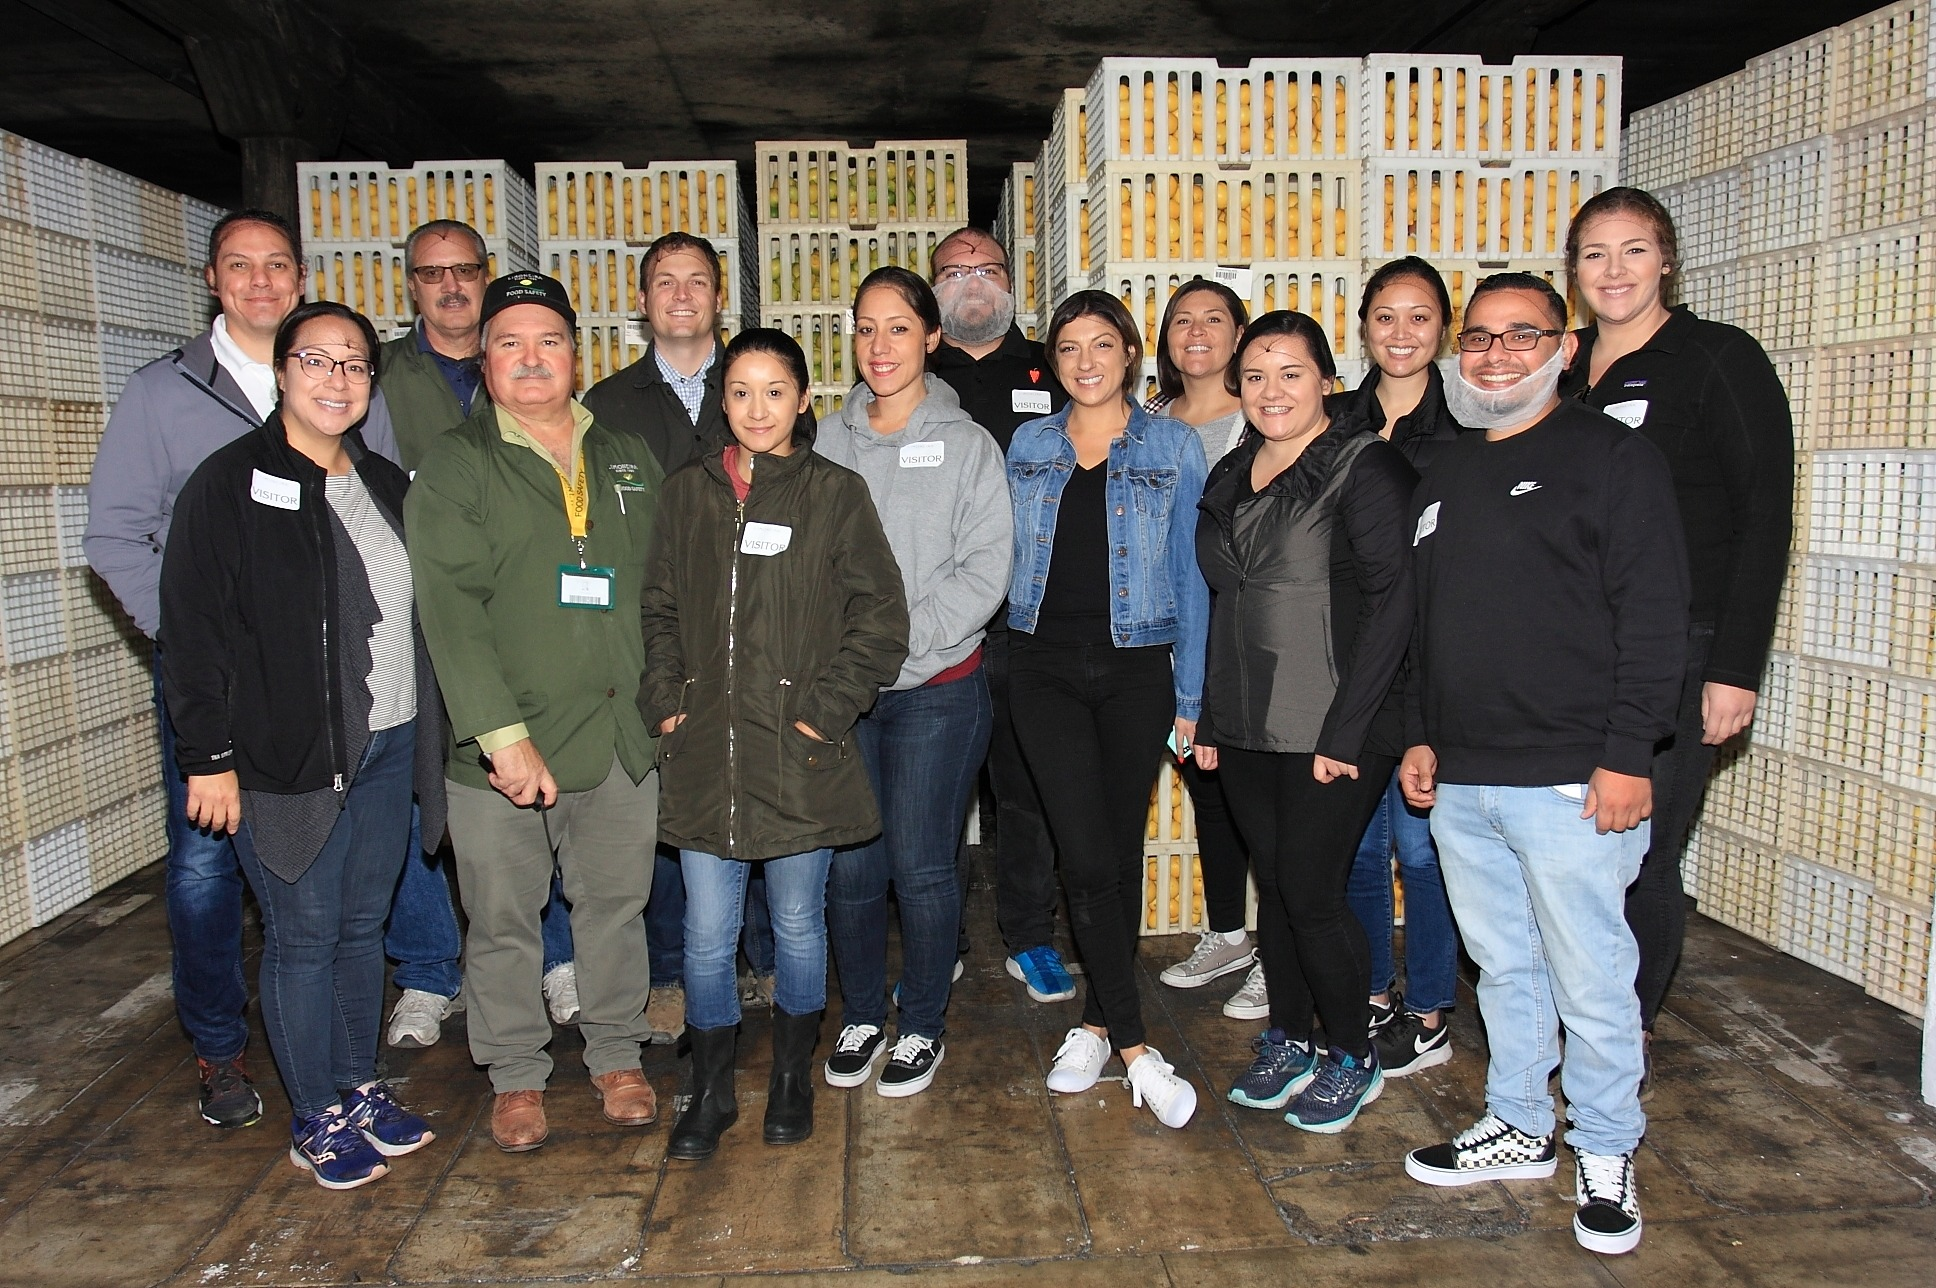 In the basement of Limoneira with Tomas Gonzalez, Director of Global Food Safety & Compliance and Apprentice Committee member, Emily Fragoso of MIXTEC Group; with Apprentices Esmeralda Mejia, Denise Gonzalez, Jessica Garcia, Destiny Dulaney, Jose Morales, Jeffrey Fish, Kevin Trisko, Thomas Rossi, Julie Boland, Amanda Nojadera, and Briana Giampaoli.